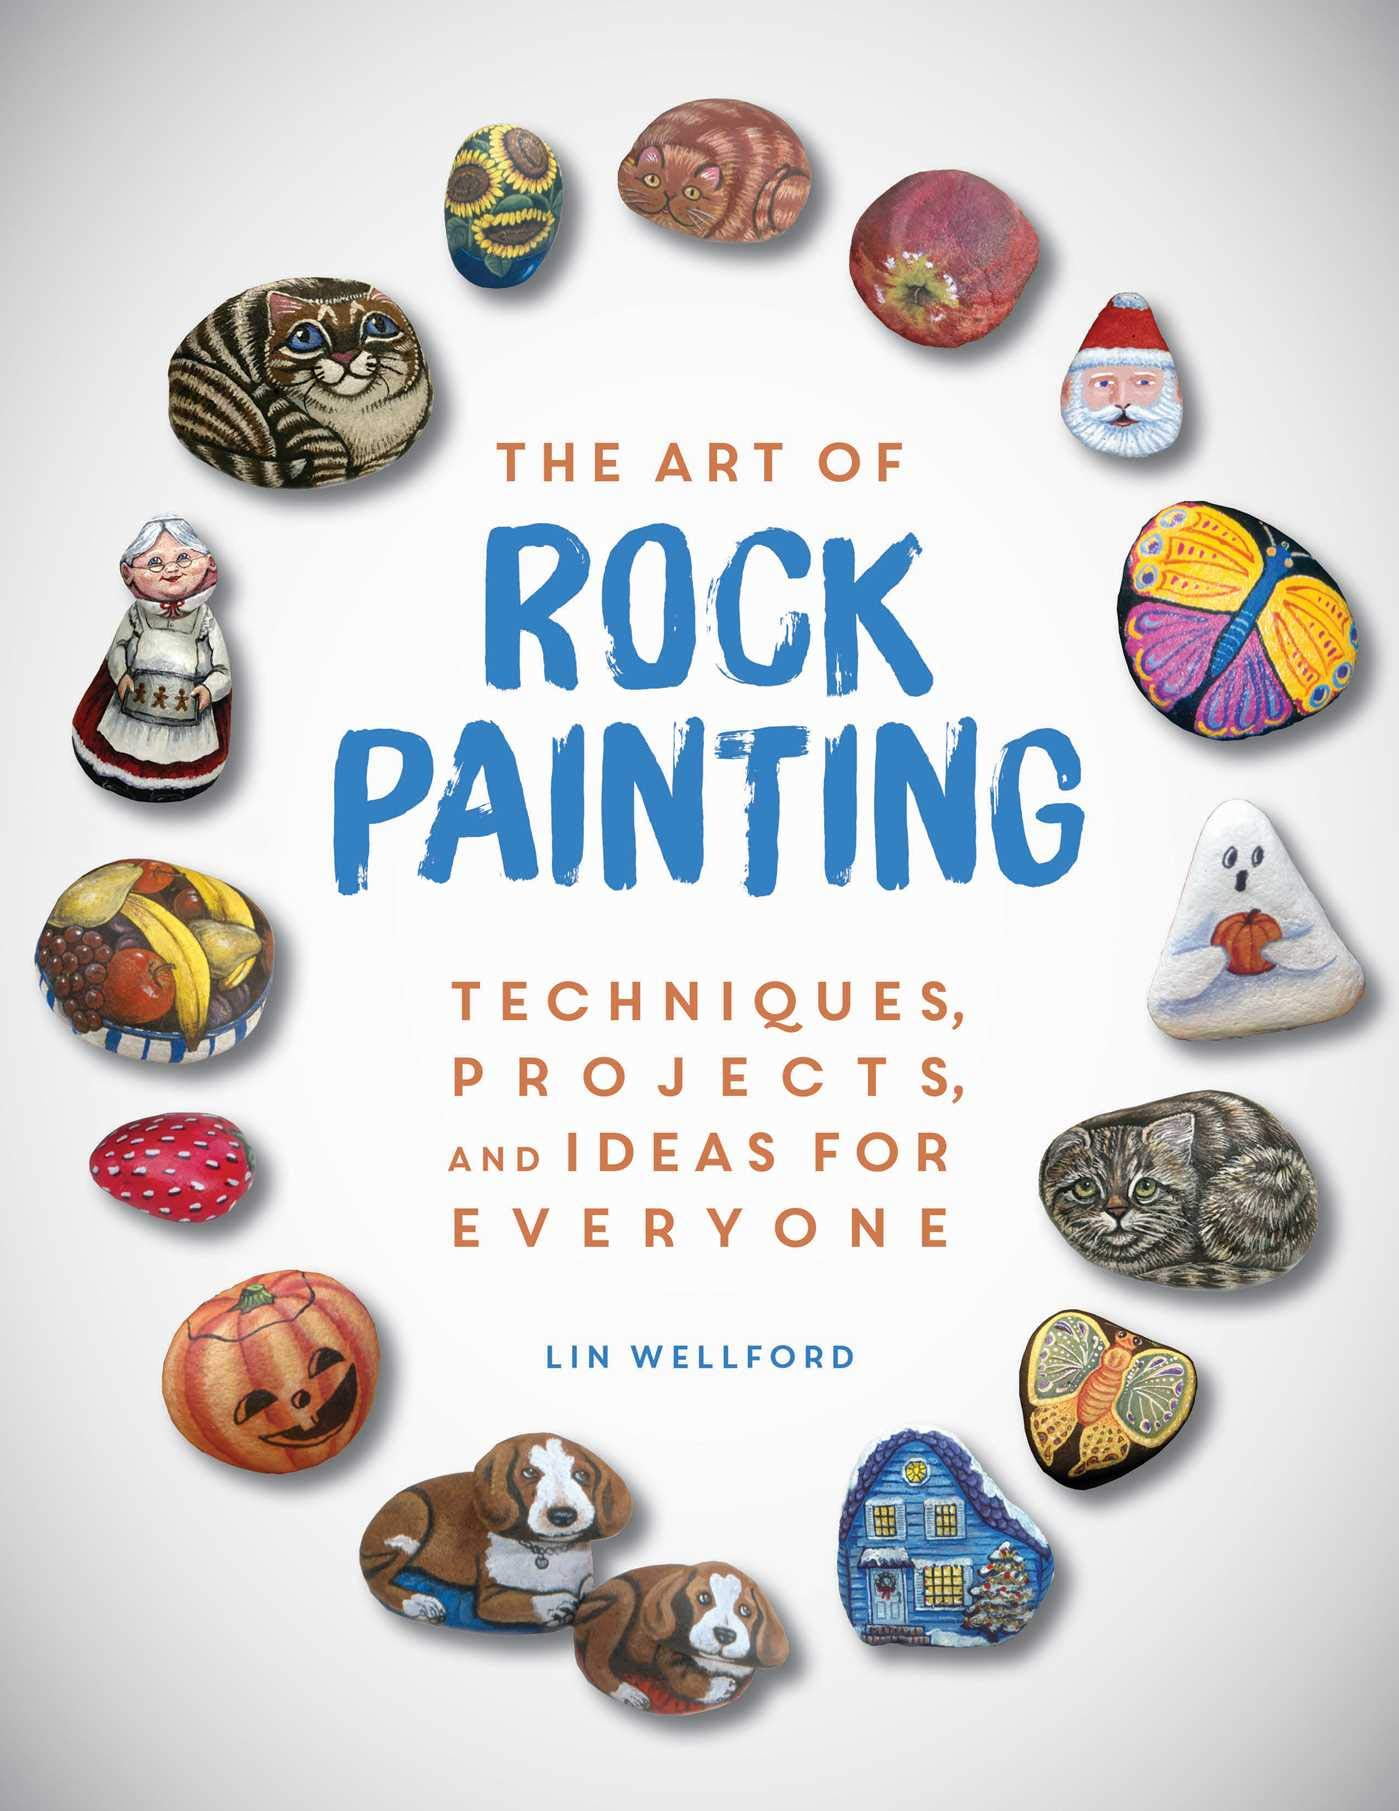 The Art Of Rock Painting Techniques Projects And Ideas For Everyone Wellford Lin 9781631582943 Amazon Com Books